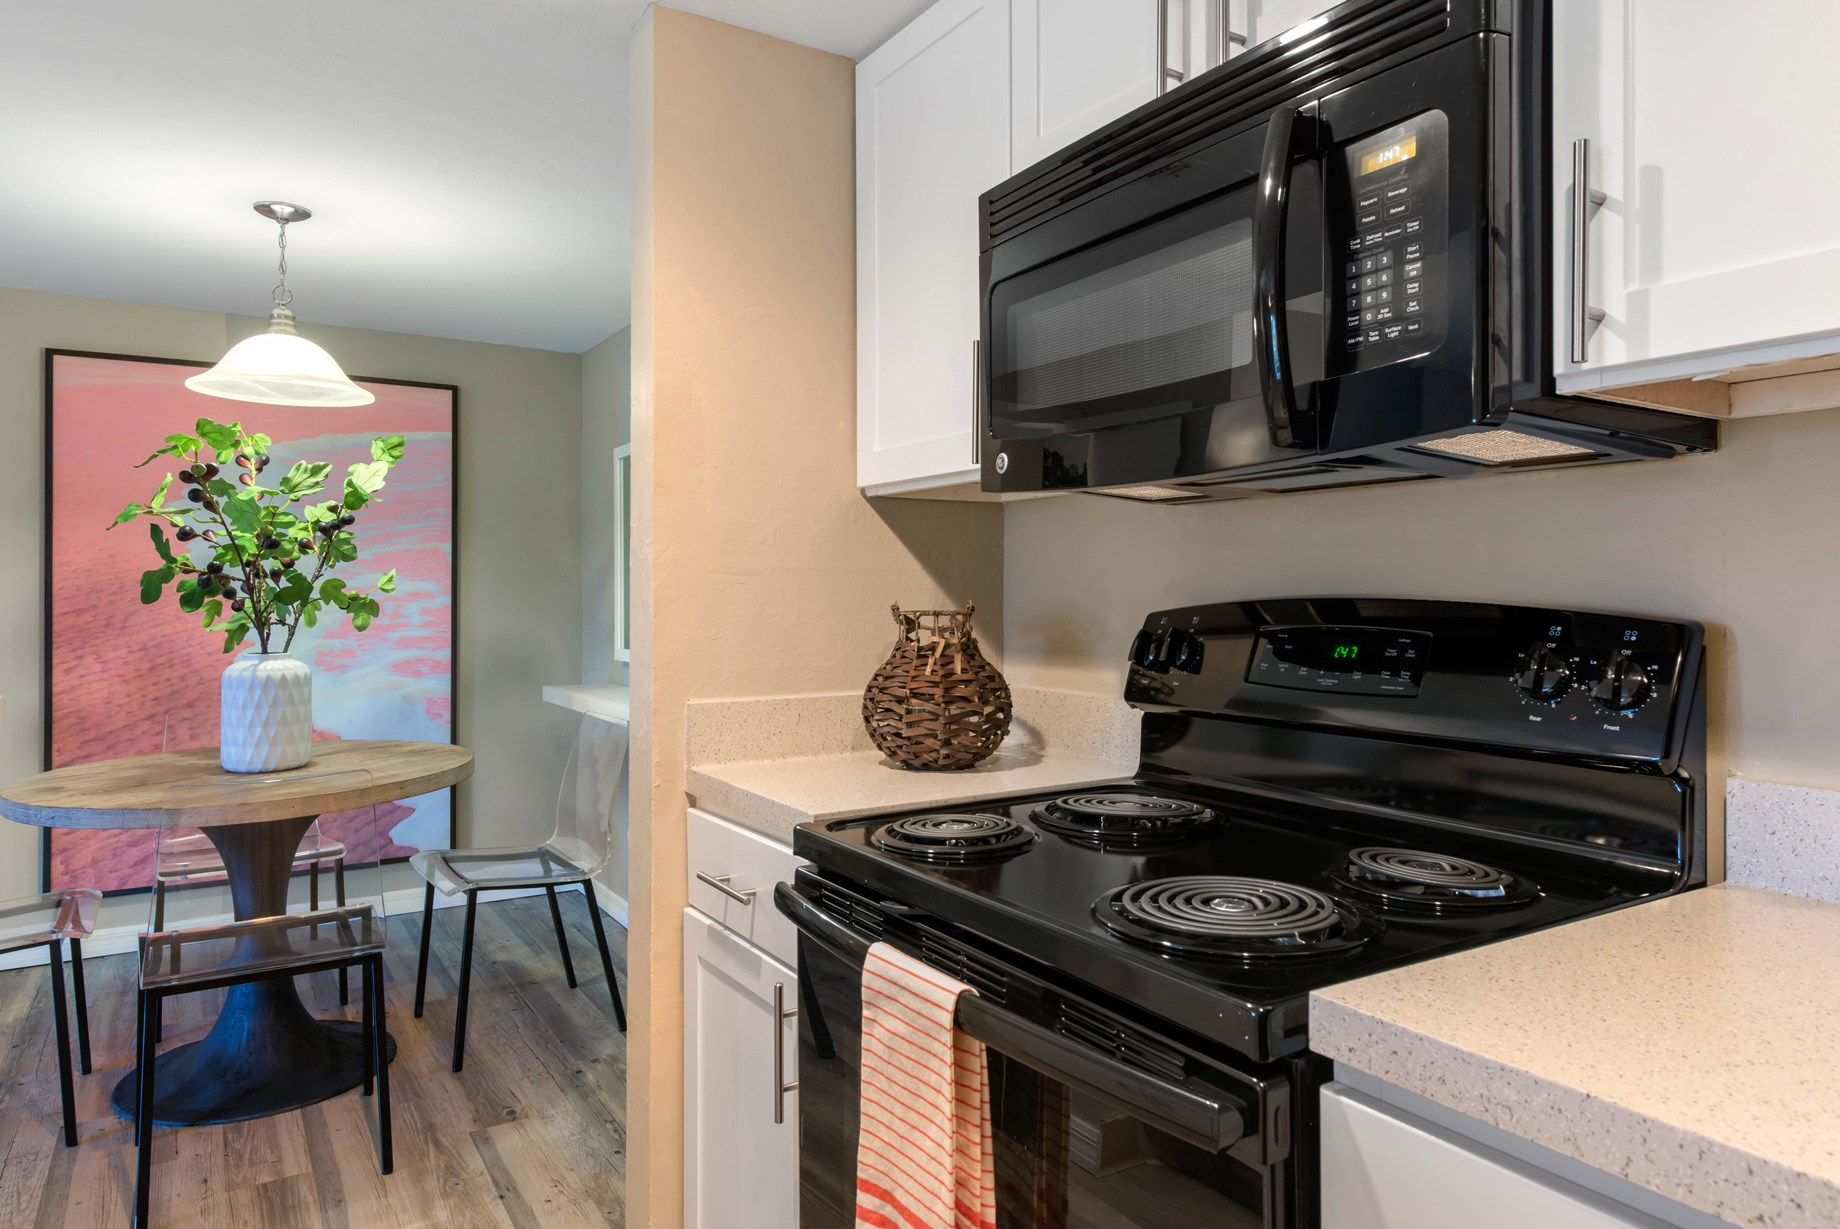 Kitchen at Brantley Pines Apartments in Ft. Myers, FL